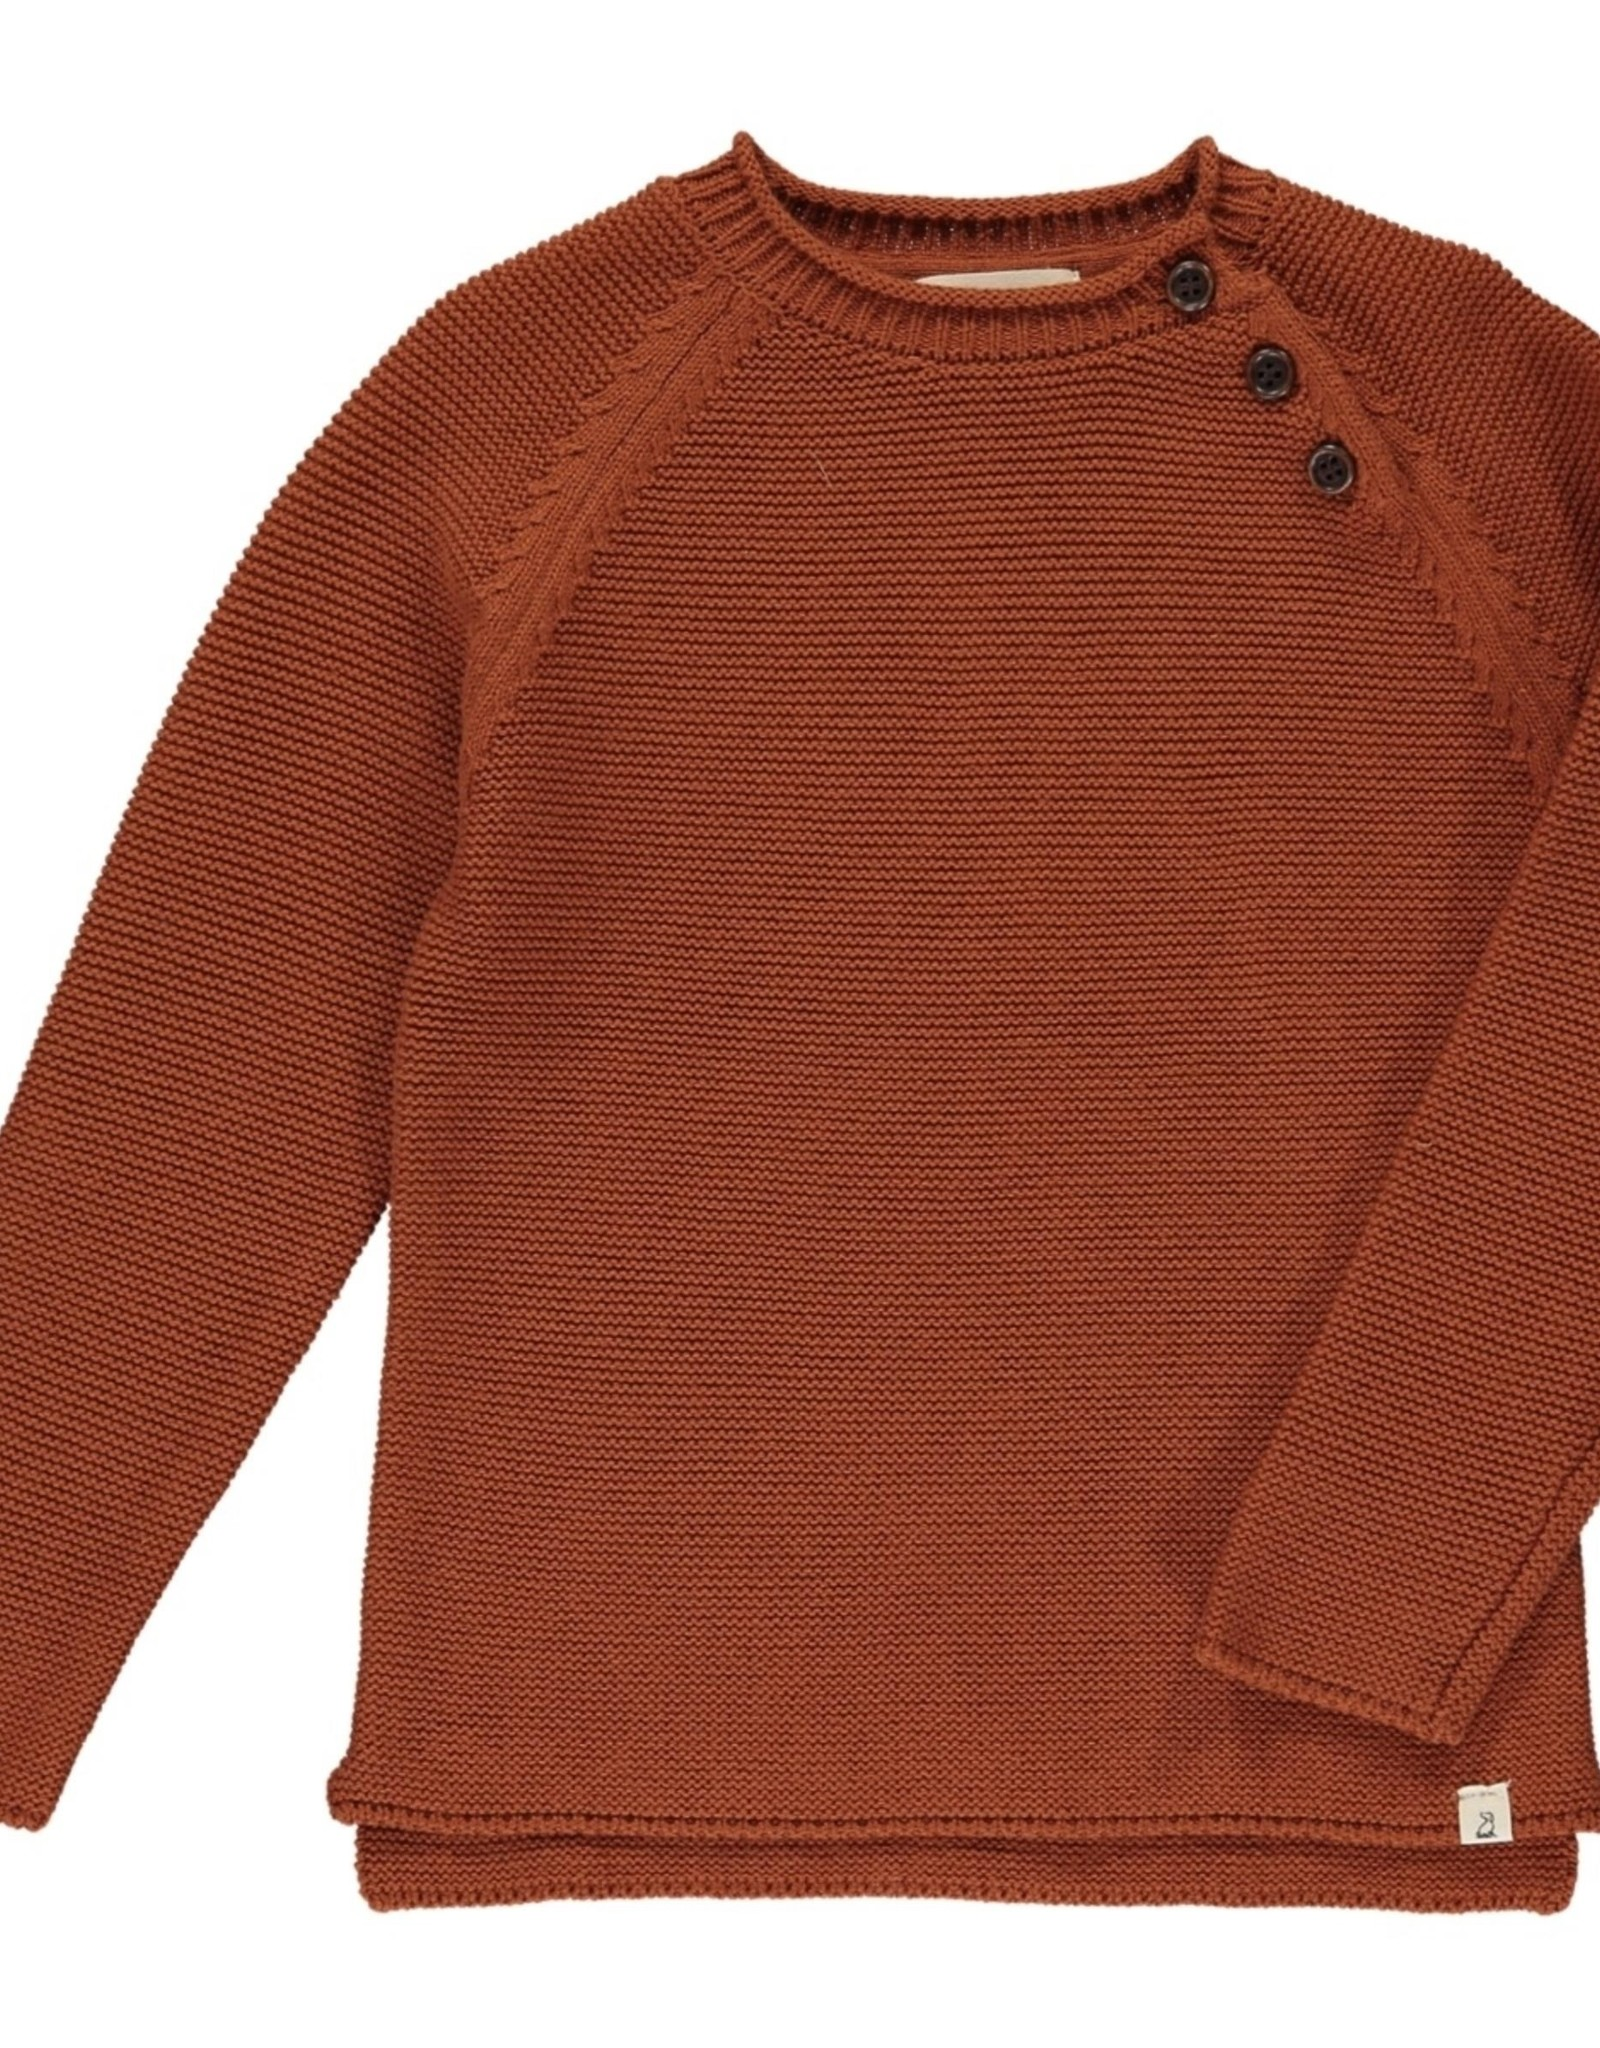 Me & Henry baby sweater- rust